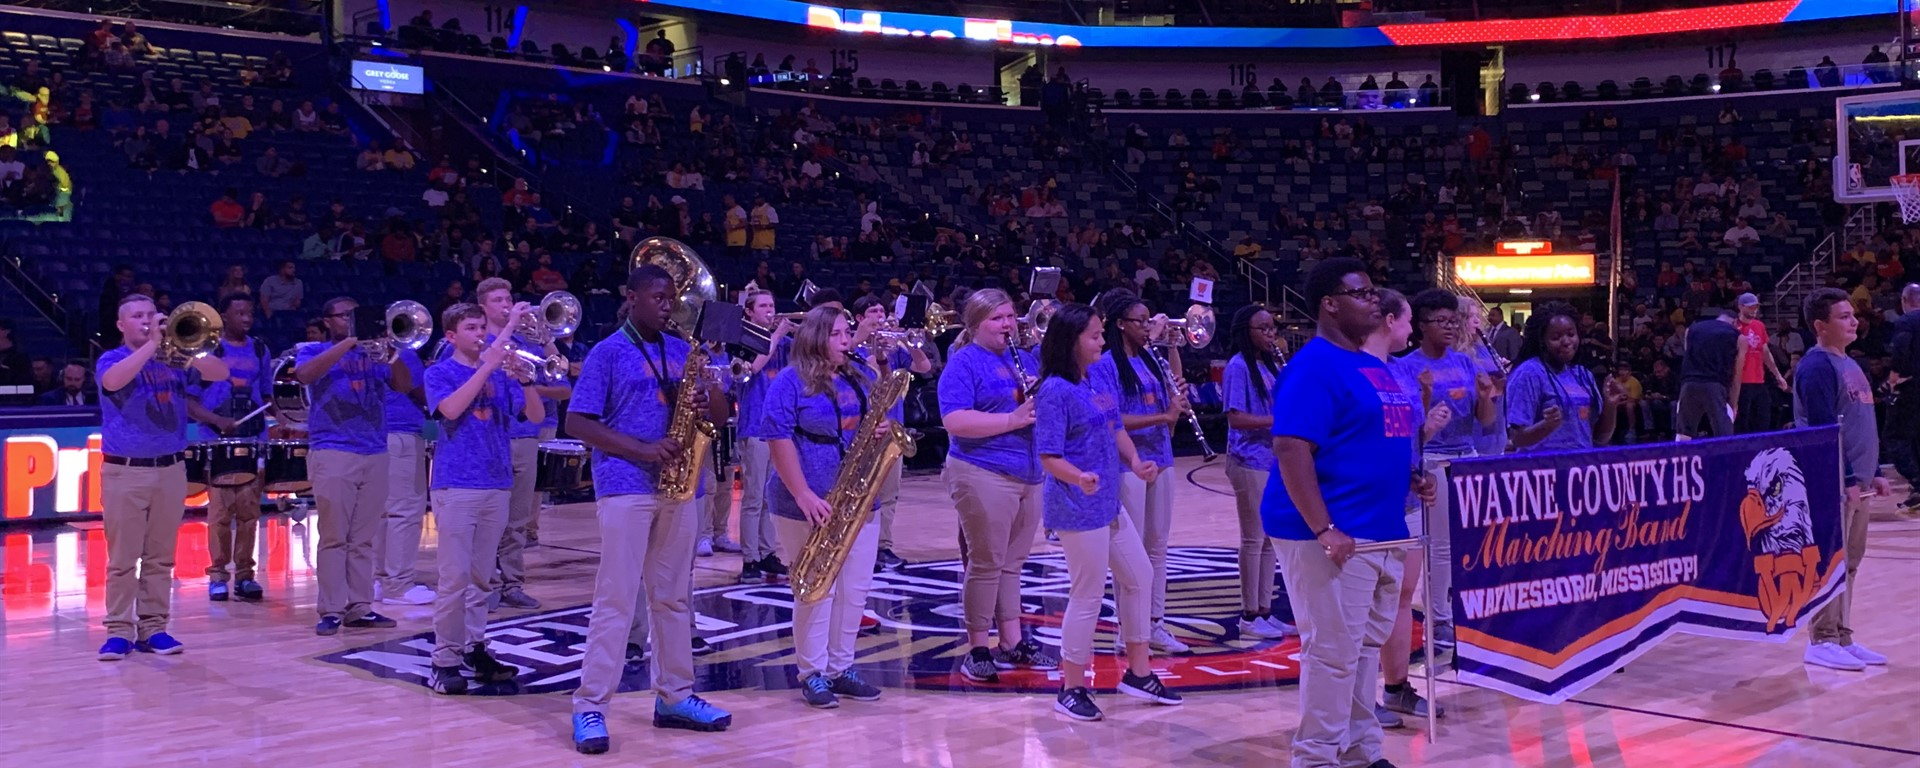 WCHS Band at New Orleans Pelicans Basketball Game